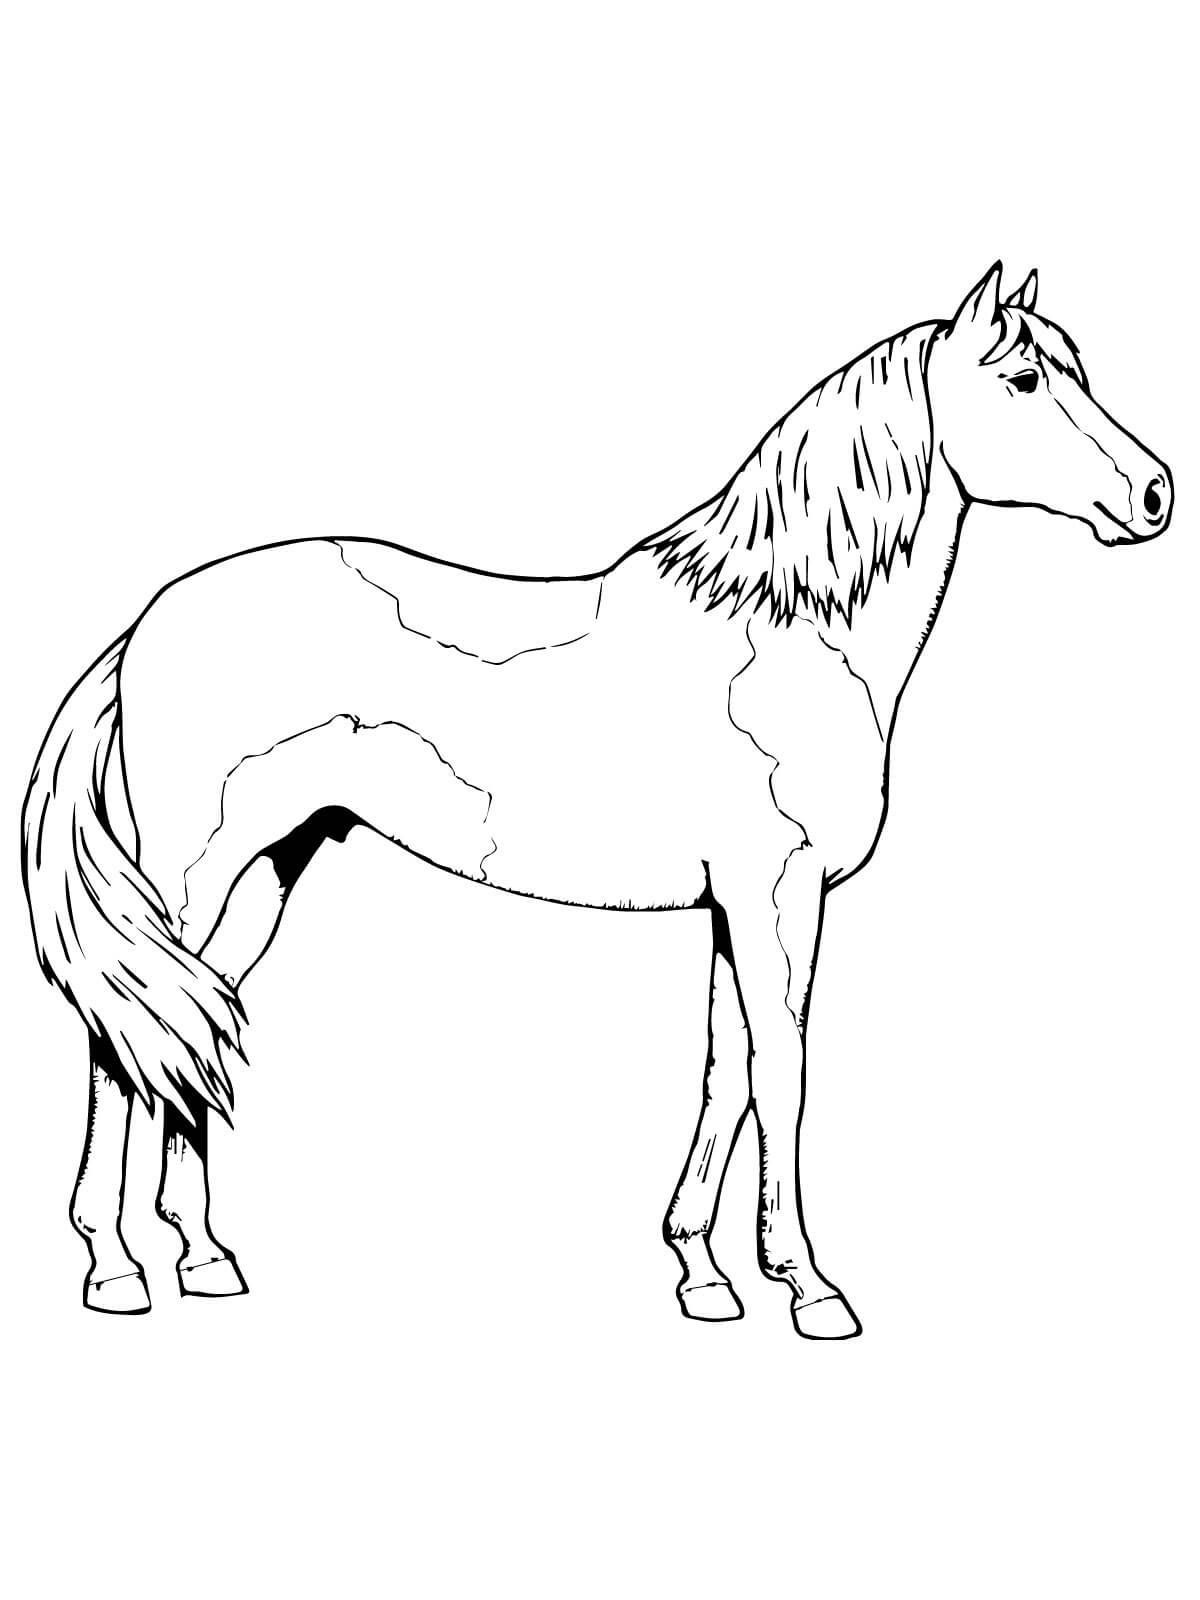 Horse Color Sheet For Kids Horse Coloring Pages Horse Coloring Coloring Pages [ 1600 x 1200 Pixel ]